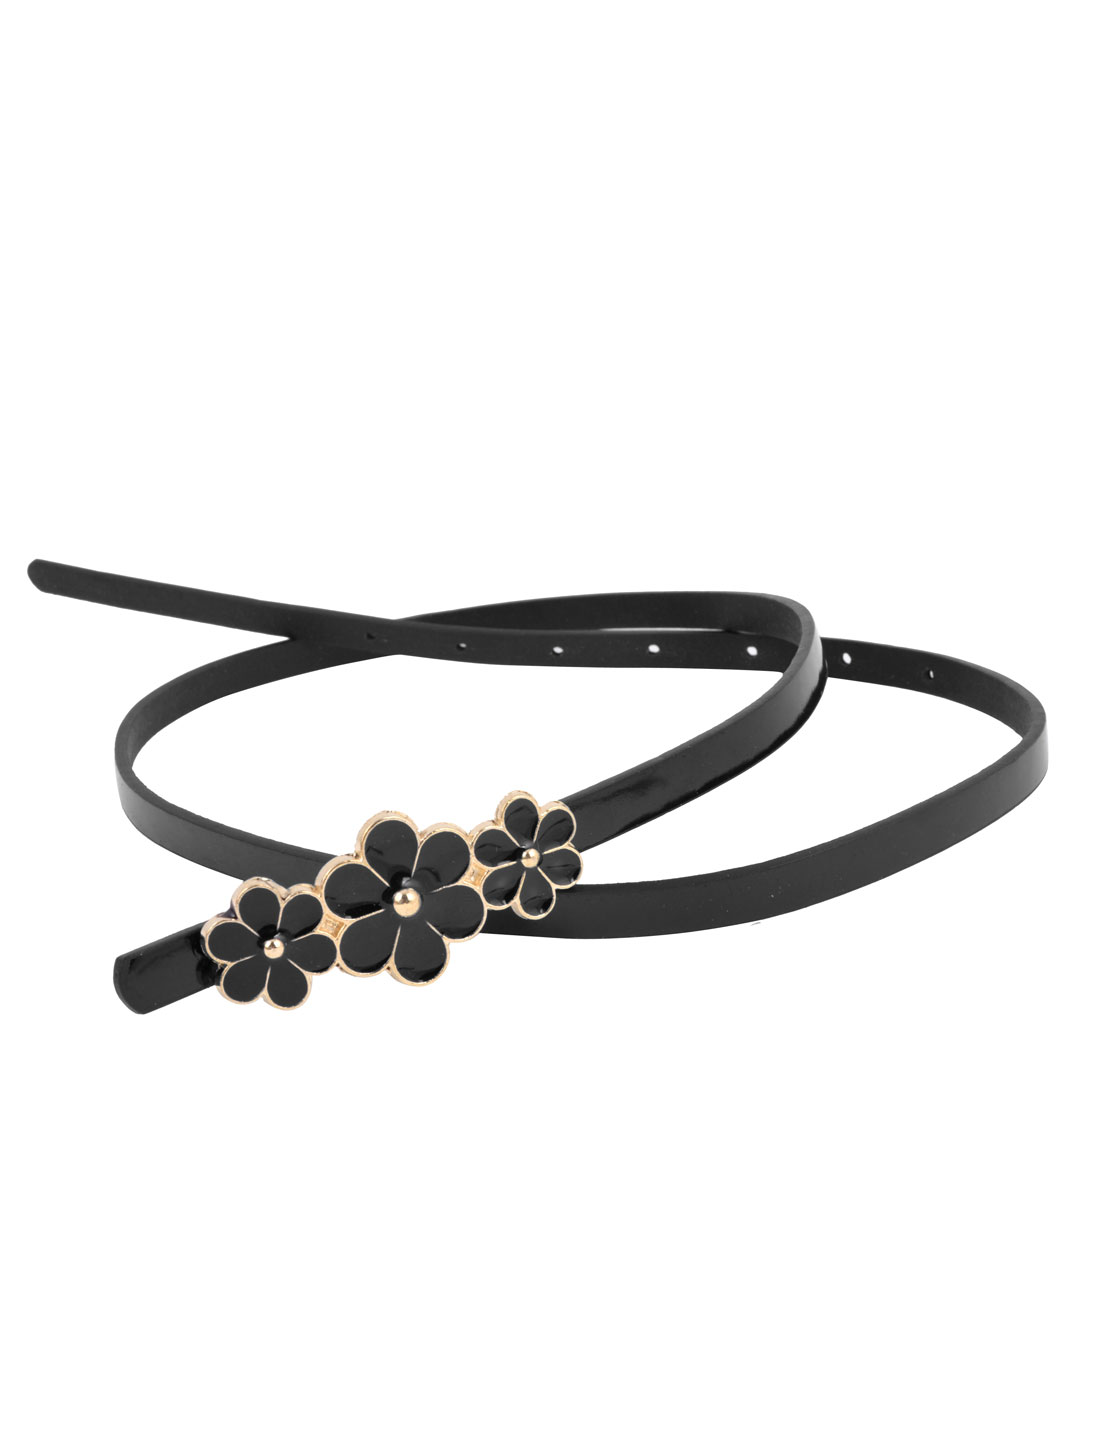 Women Flower Decor Press Buckle Perforated 7-hole Faux Leather Slim Waist Belt Black